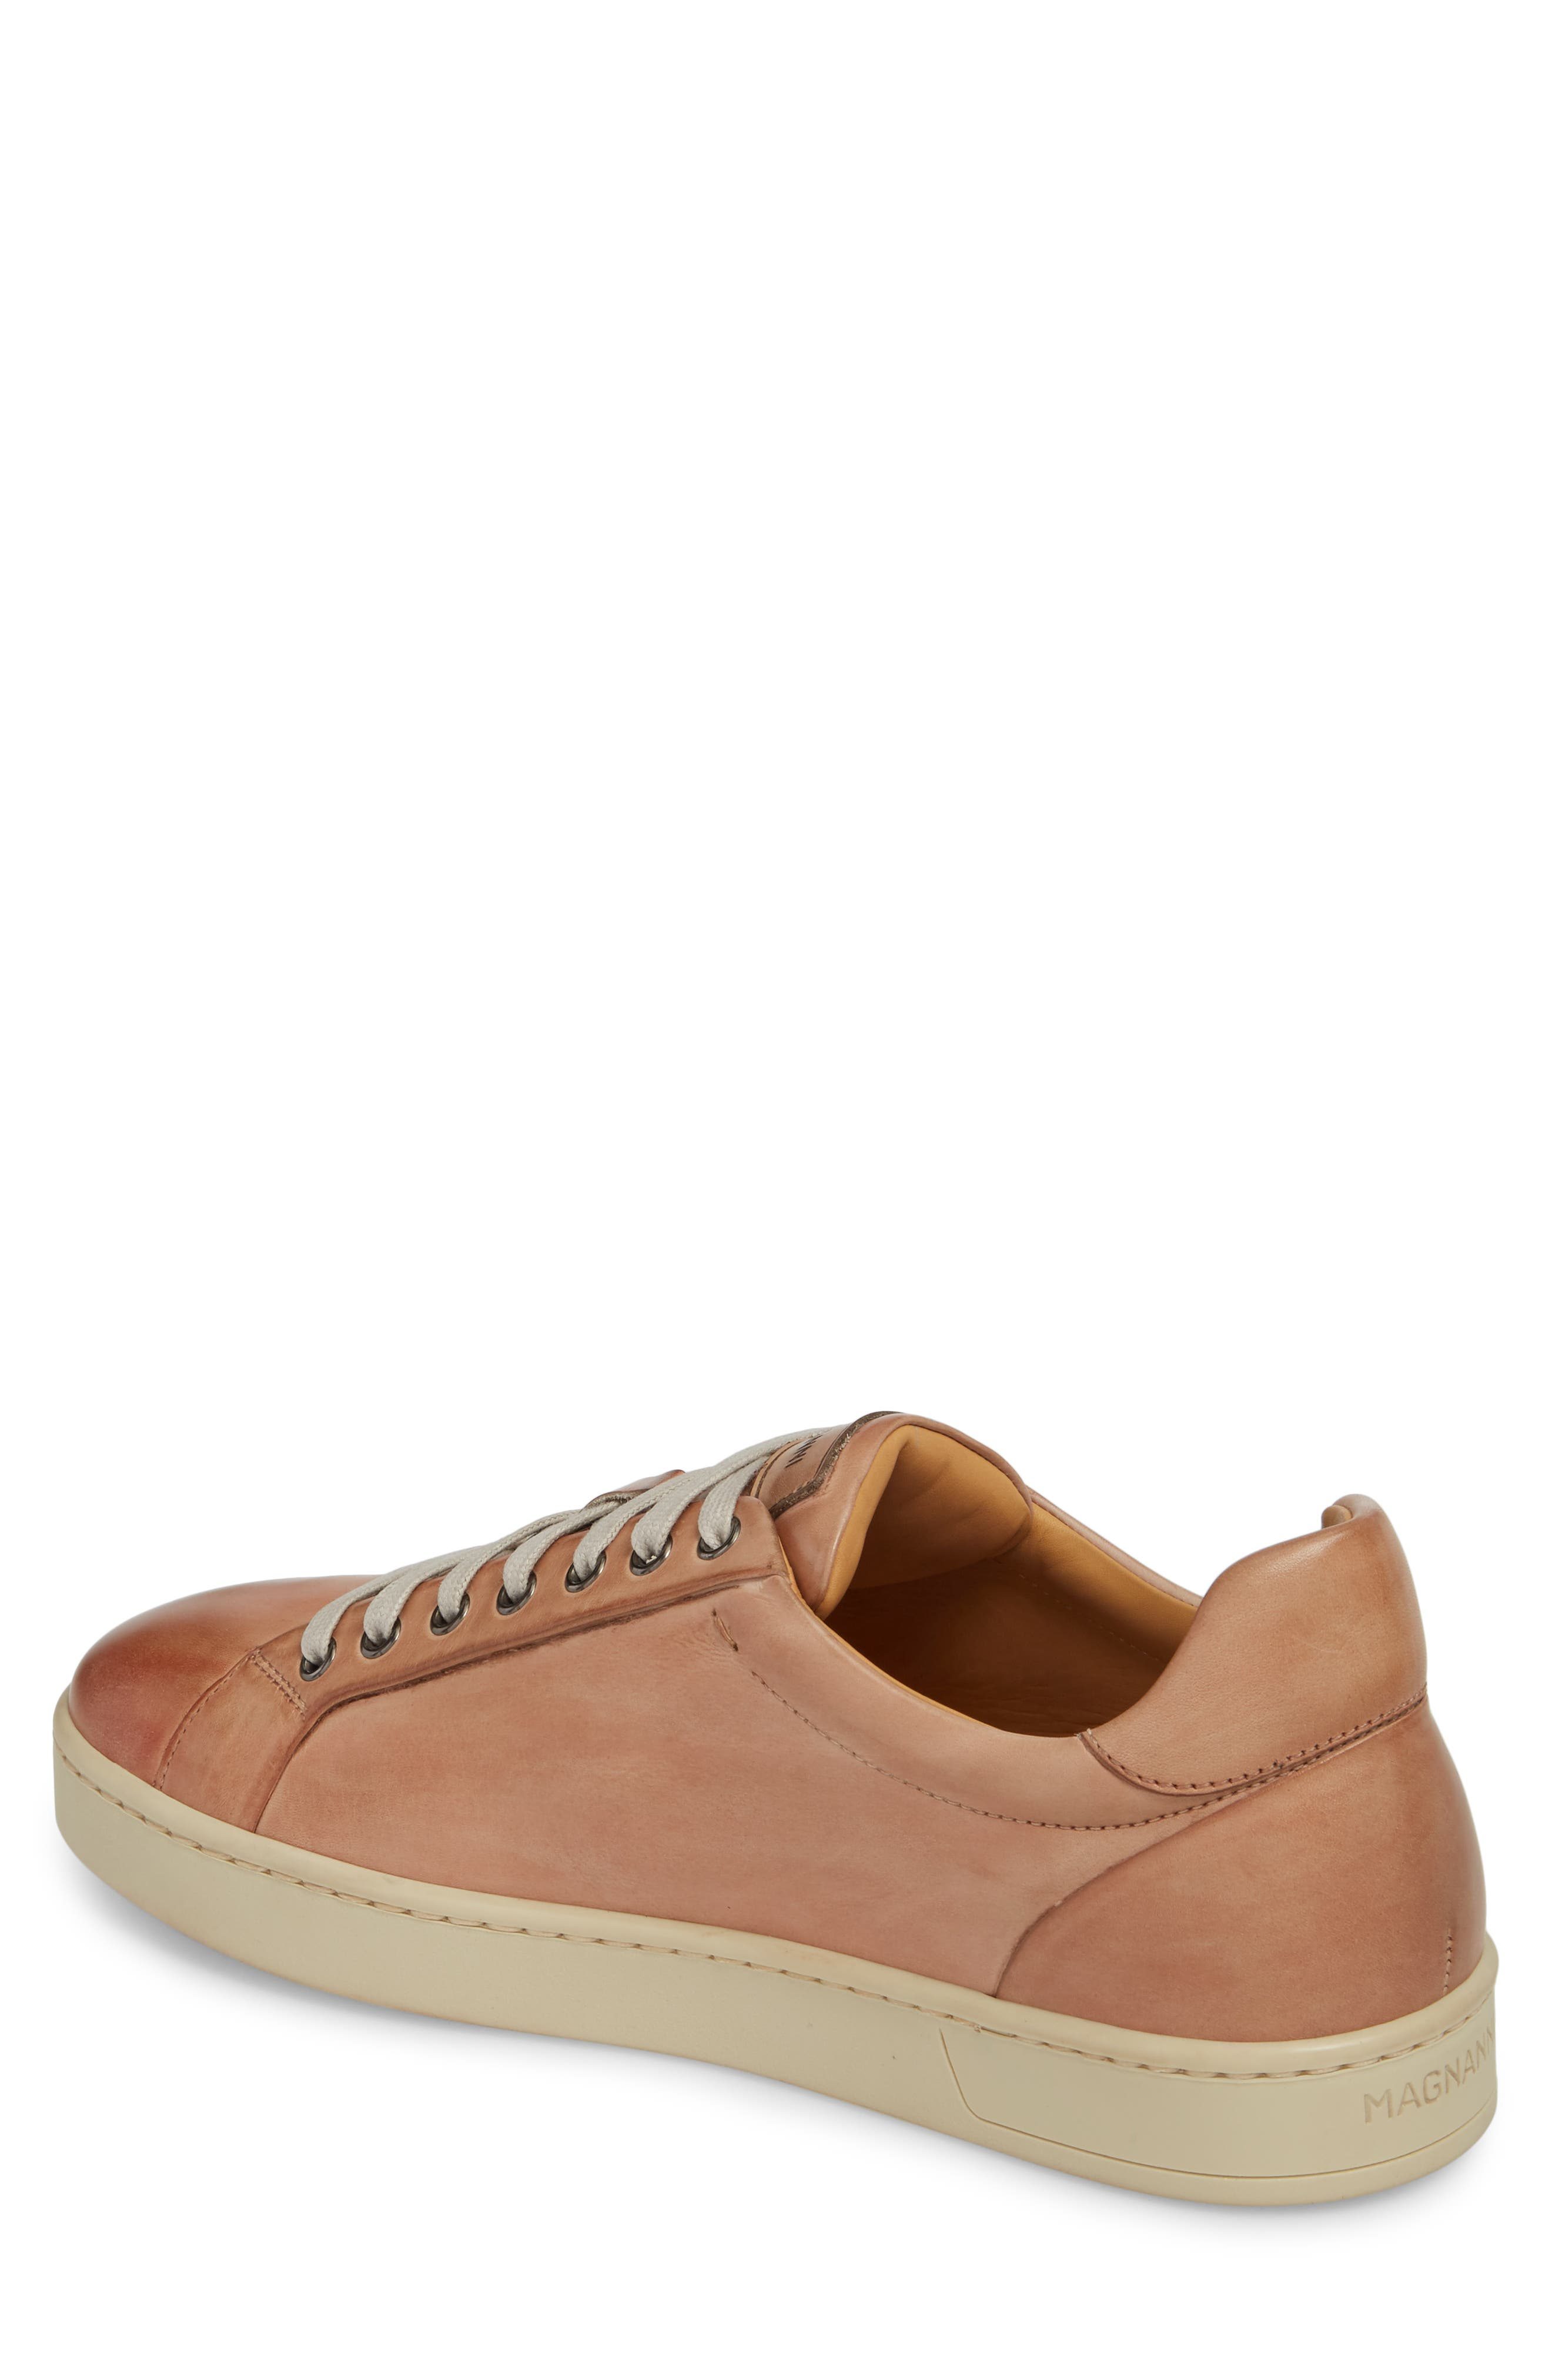 Elonso Low Top Sneaker,                             Alternate thumbnail 2, color,                             Rosa Leather